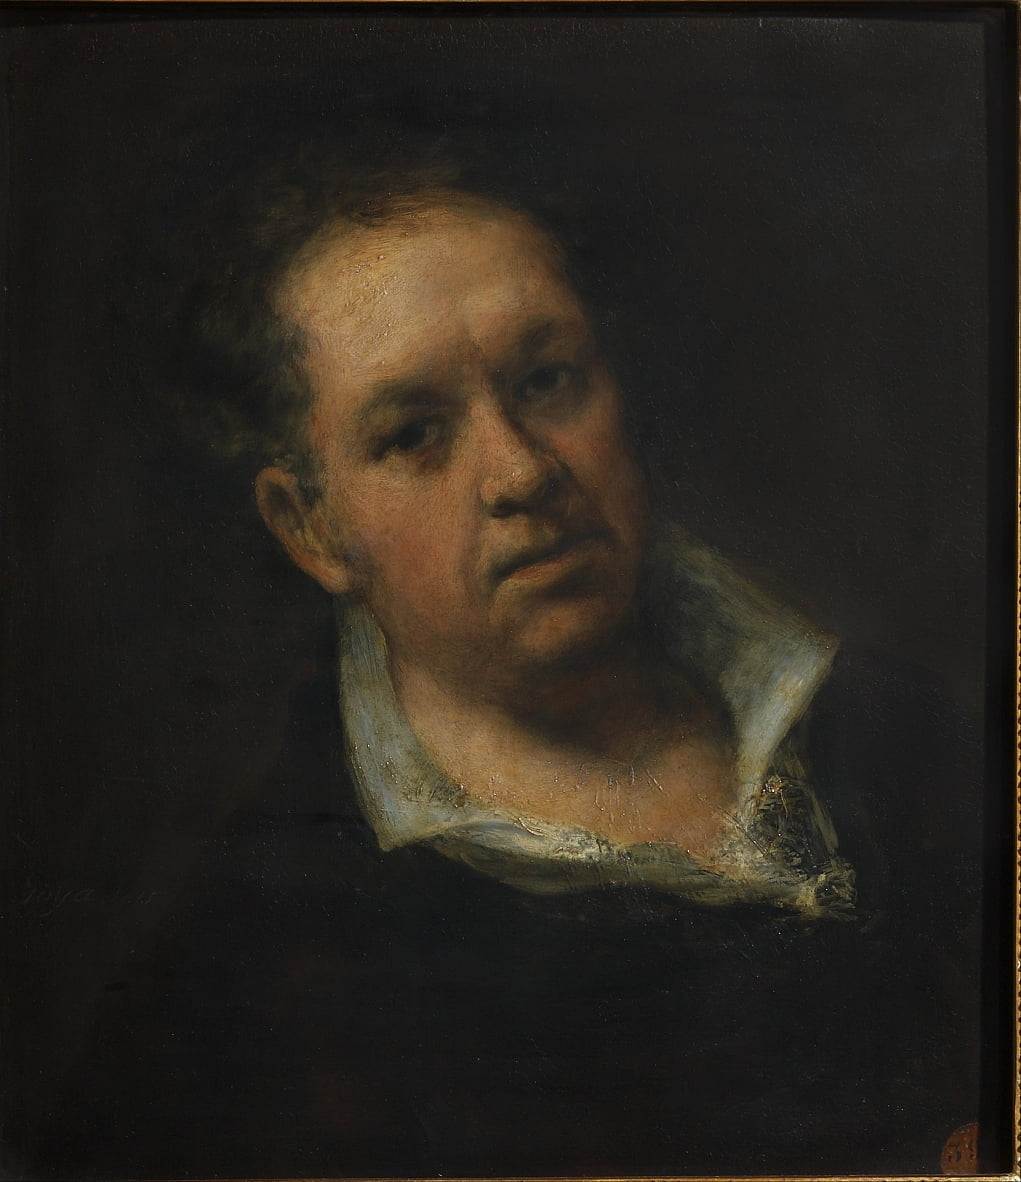 autoritratto da Francisco de Goya